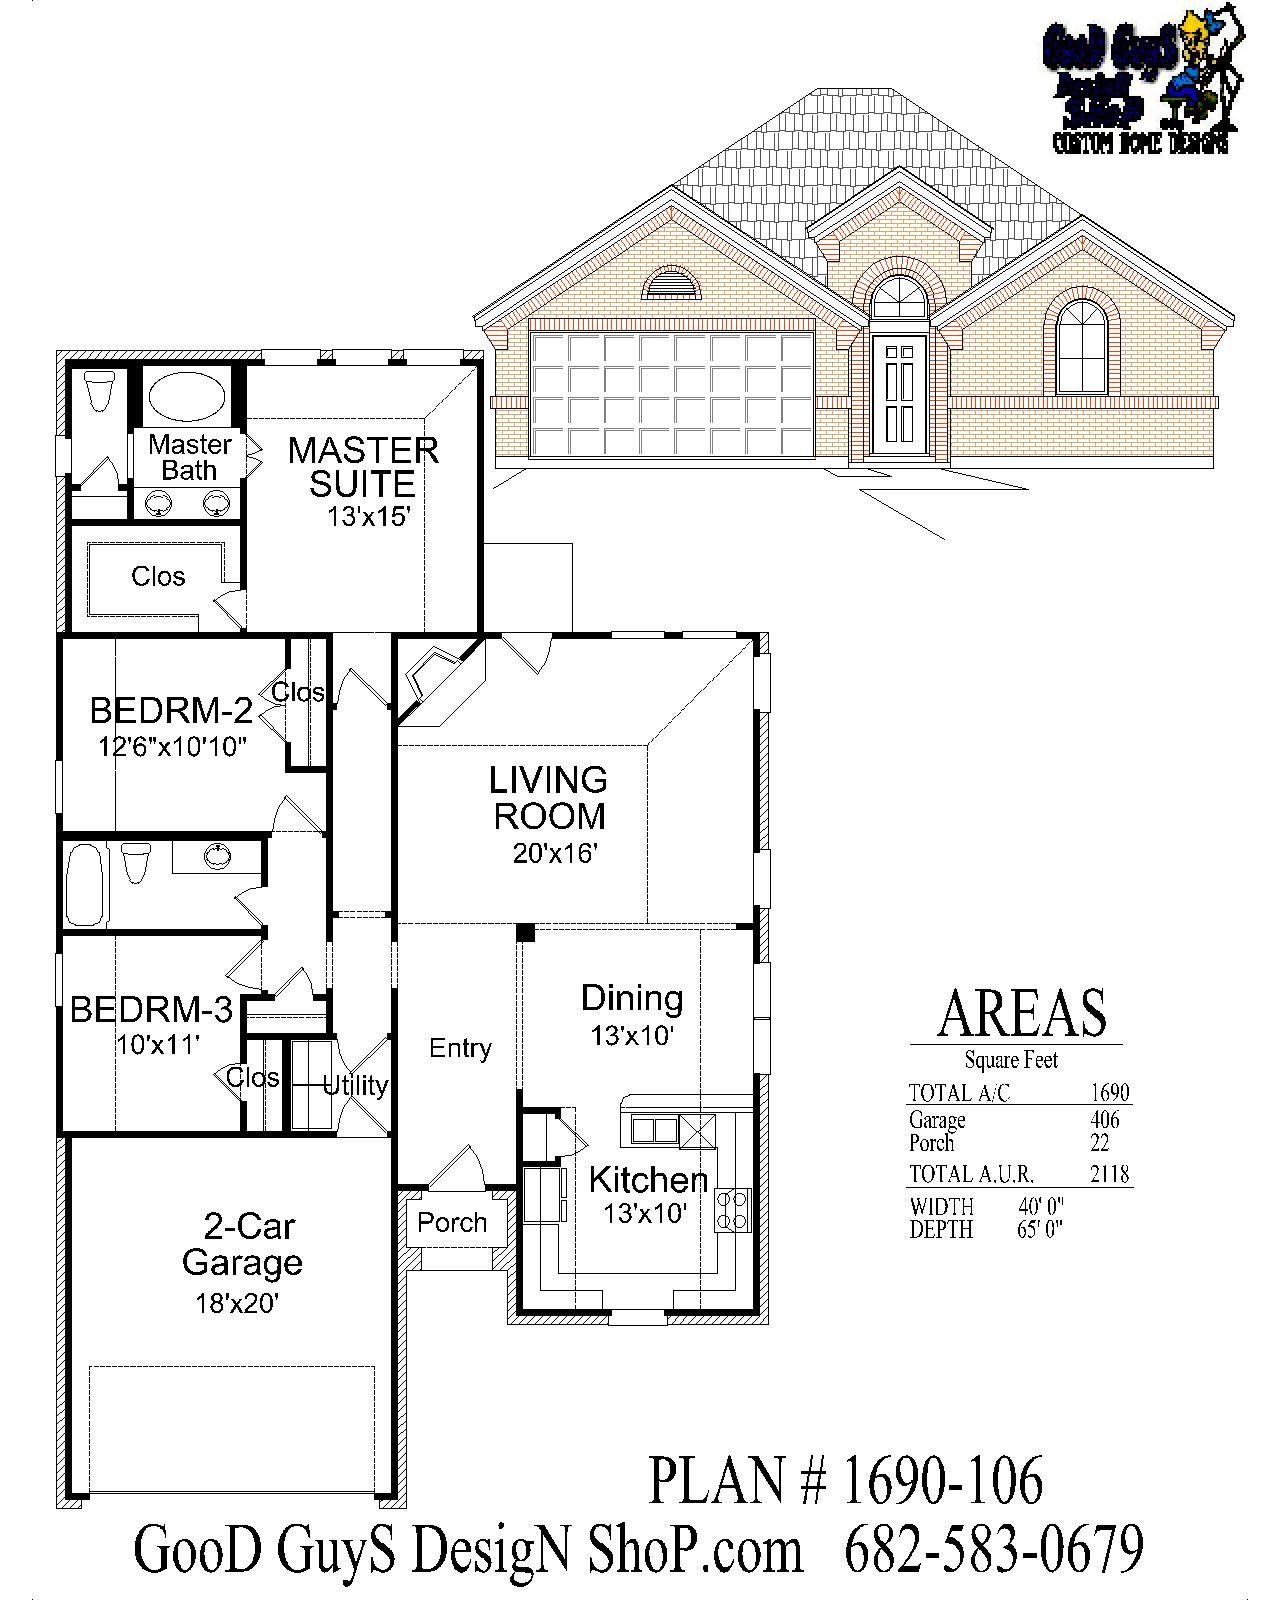 Pin on UP TO 2000 sq.ft. HOUSE PLANS www.GooDGuySDesigNShoP.com  Wide House Plans Brick on brick toys, brick signs, brick wall pencil drawing, new earth sheltered home plans, brick painting, stone front home plans, brick tile, brick samples on houses, brick wood and stone exterior combinations, brick furniture, brick houses england, brick design, brick homes, brick tunnel, brick office, brick floor, brick building,